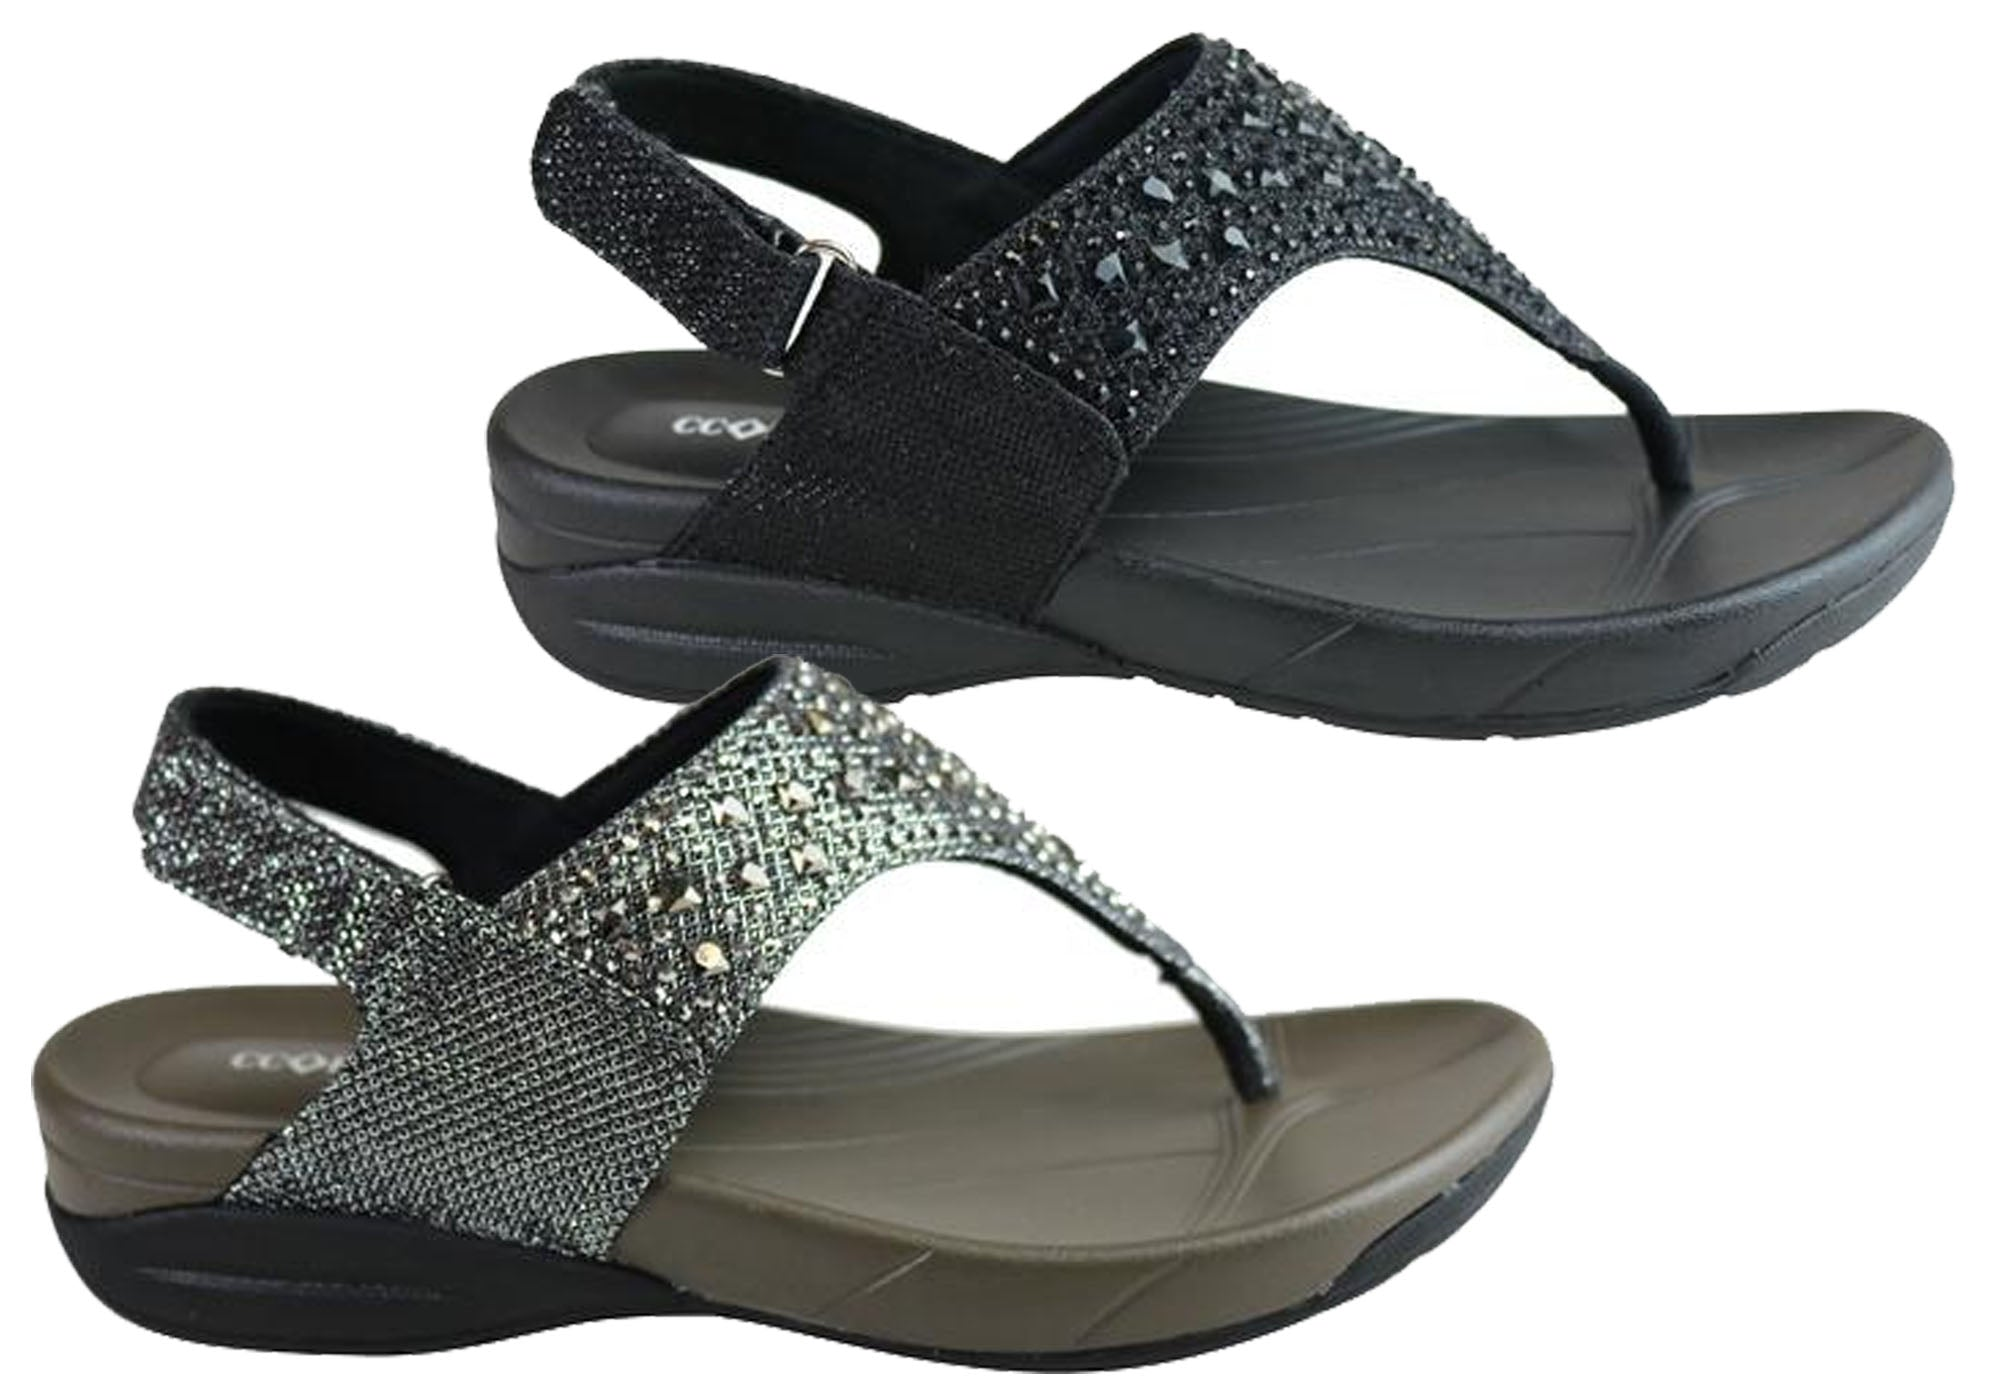 c6b8dfc75fc Details about New Cc Resorts Flan Womens Comfortable Cushioned Supportive  Sandals